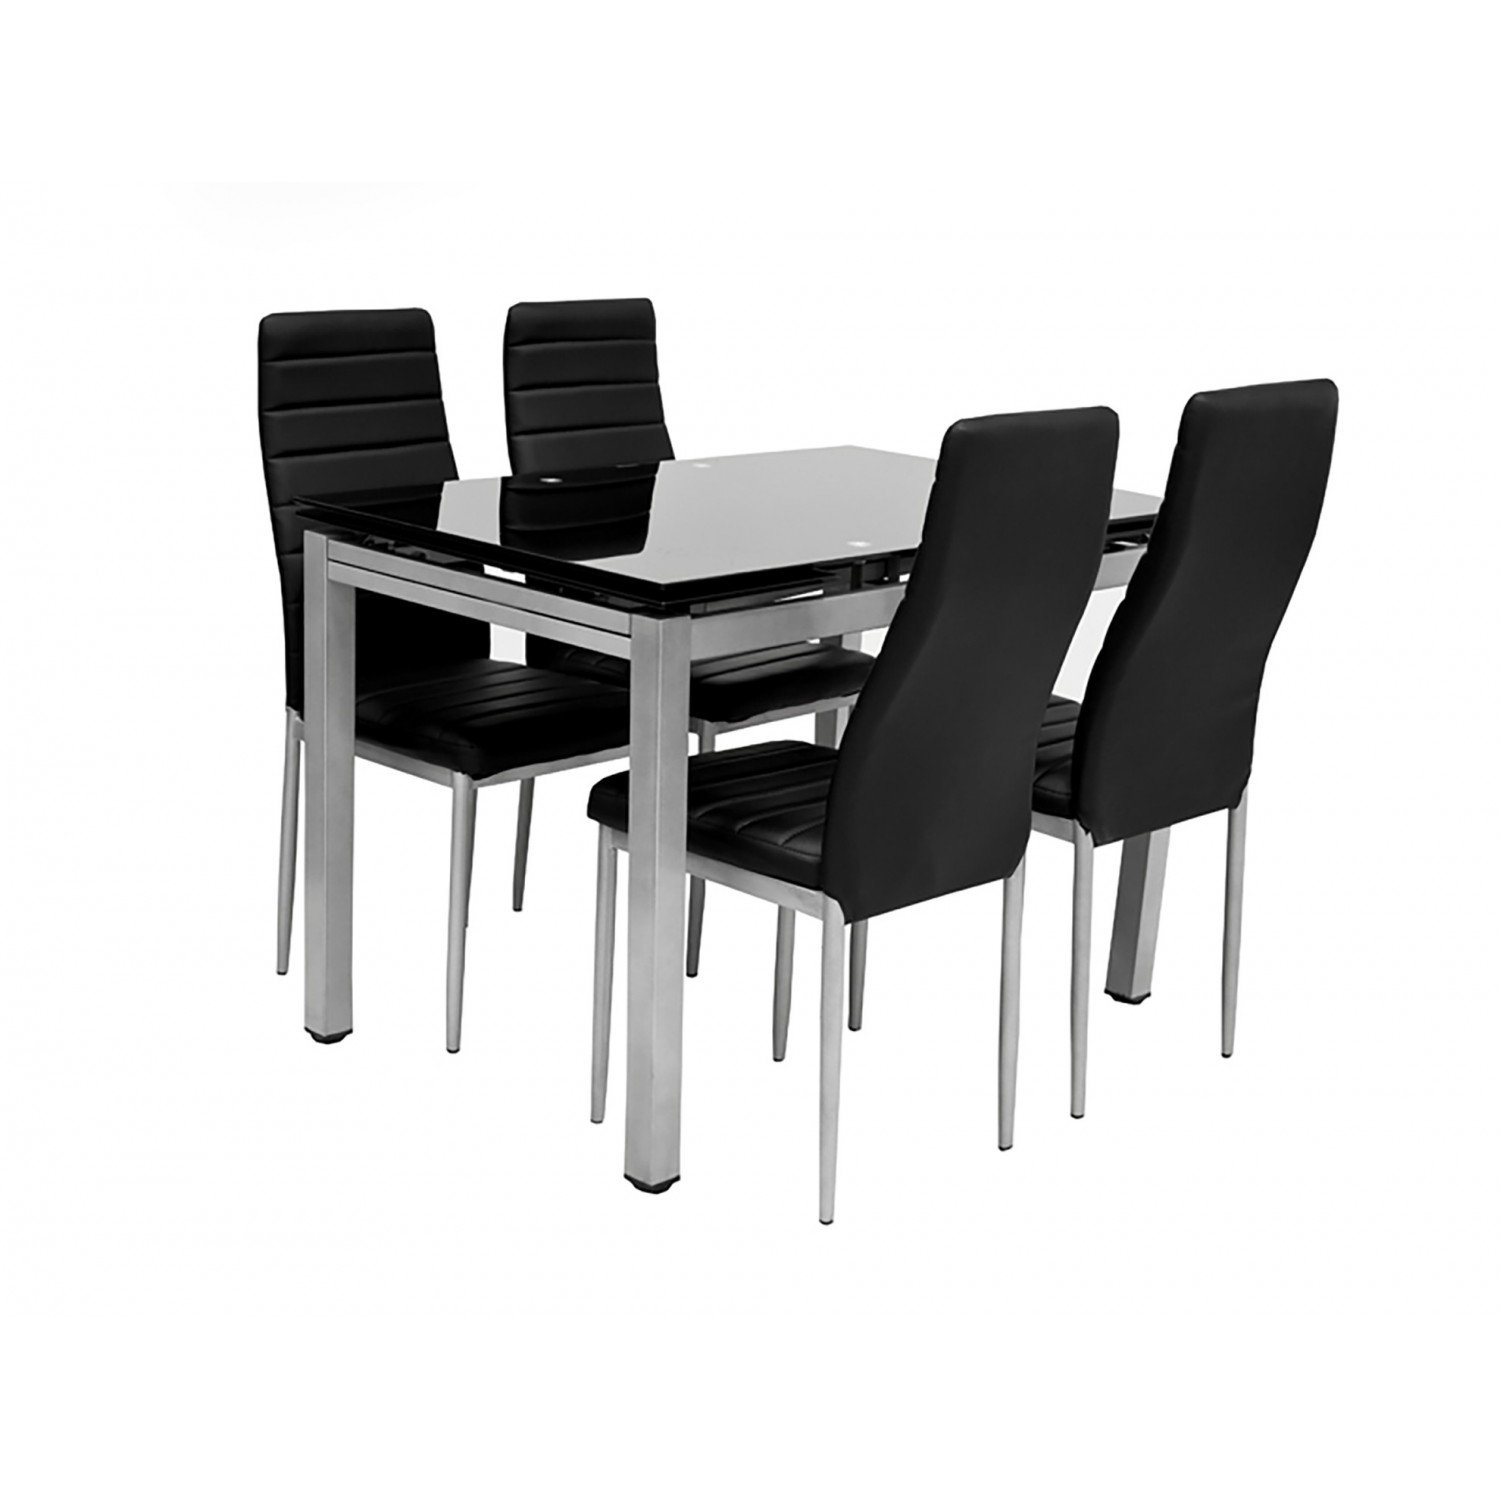 Awesome table et chaises de cuisine noire contemporary for Table et chaise contemporaine